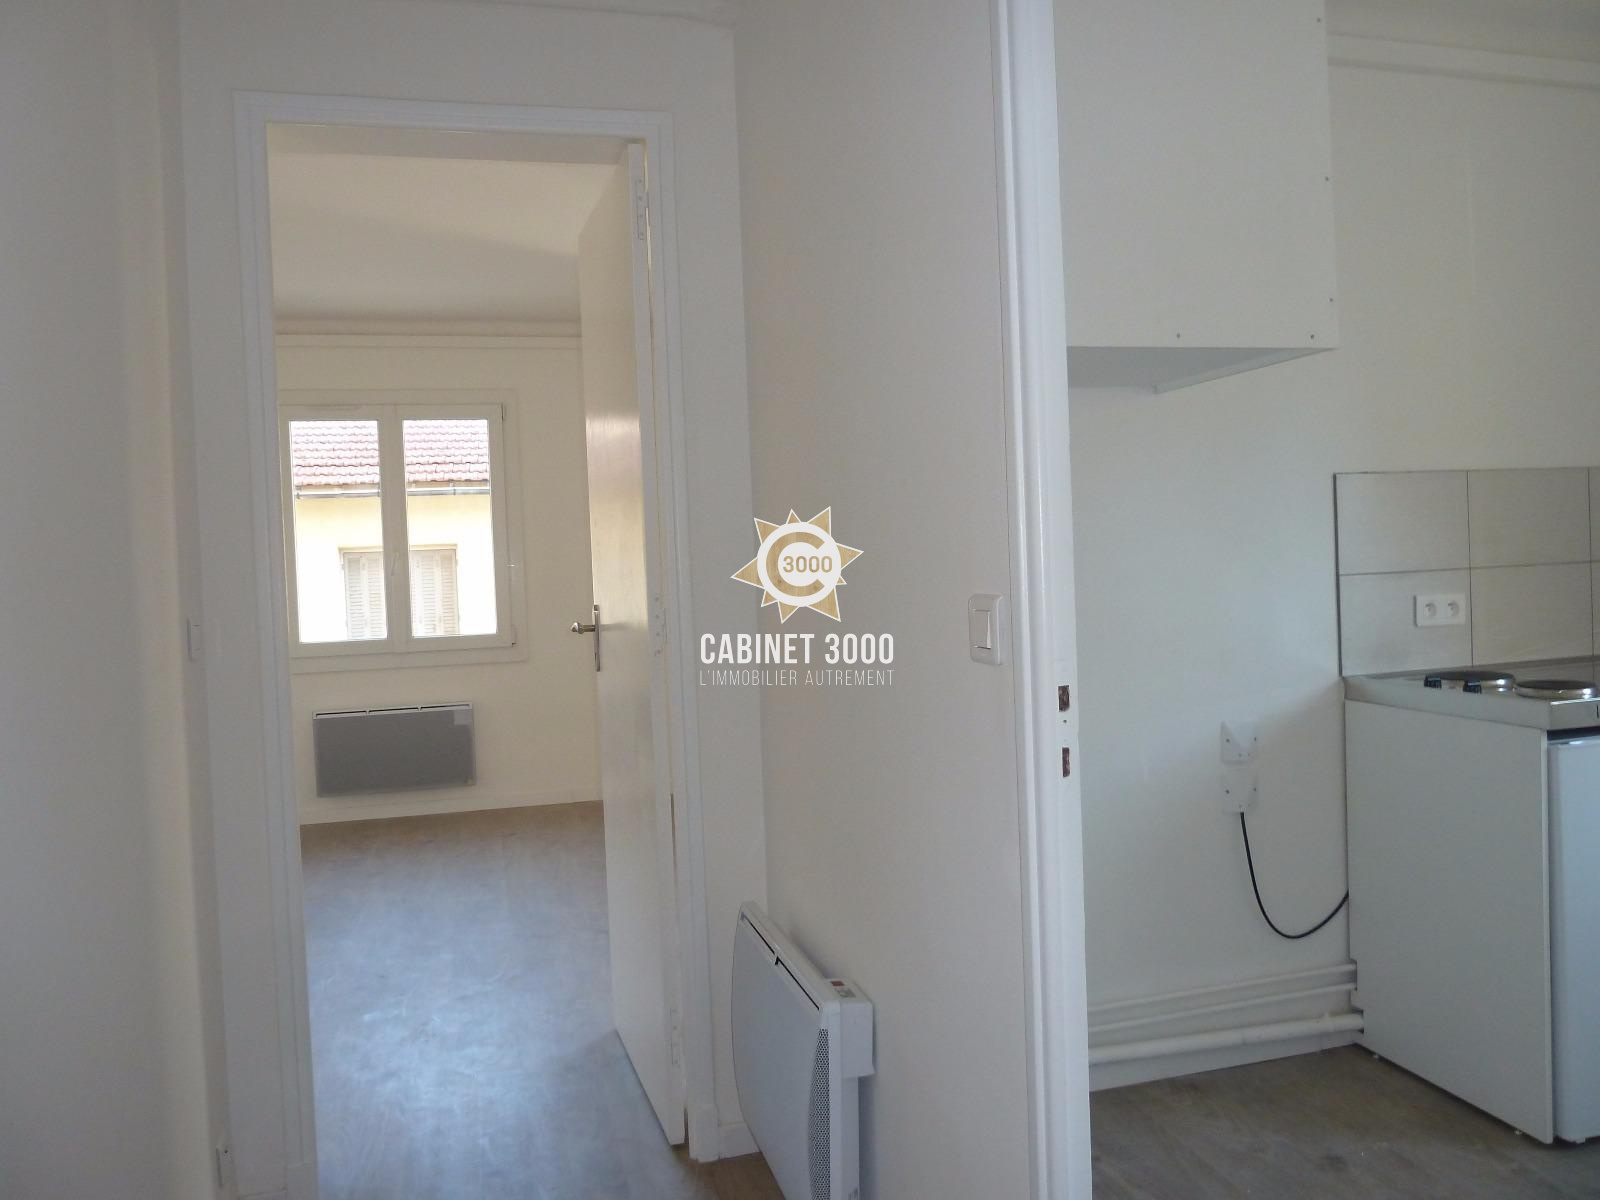 Vente m1262 toulon le mourillon appartement t2 en rdc for Vente appartement rdc